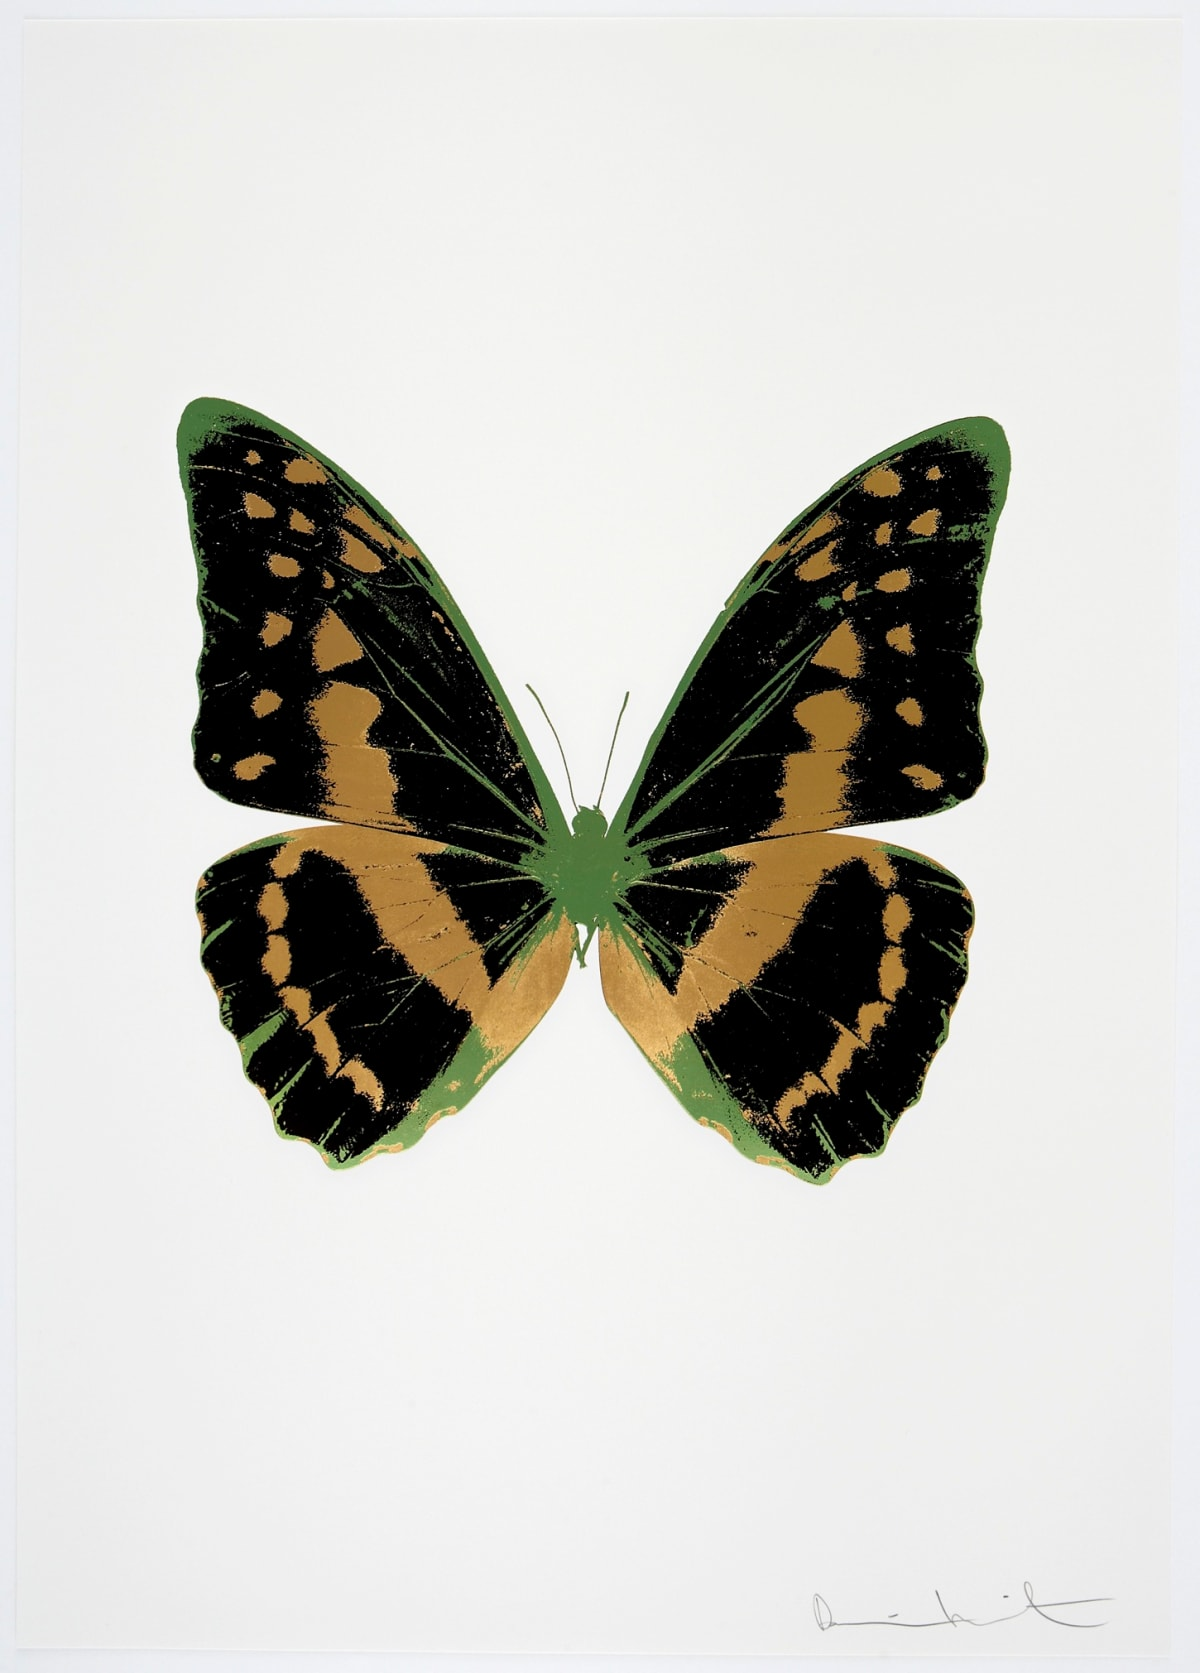 Damien Hirst The Souls III - Raven Black/African Gold/Leaf Green, 2010 3 colour foil block on 300gsm Arches 88 archival paper. Signed and numbered. Published by Paul Stolper and Other Criteria 72 x 51cm OC7940 / 660-43 Edition of 15